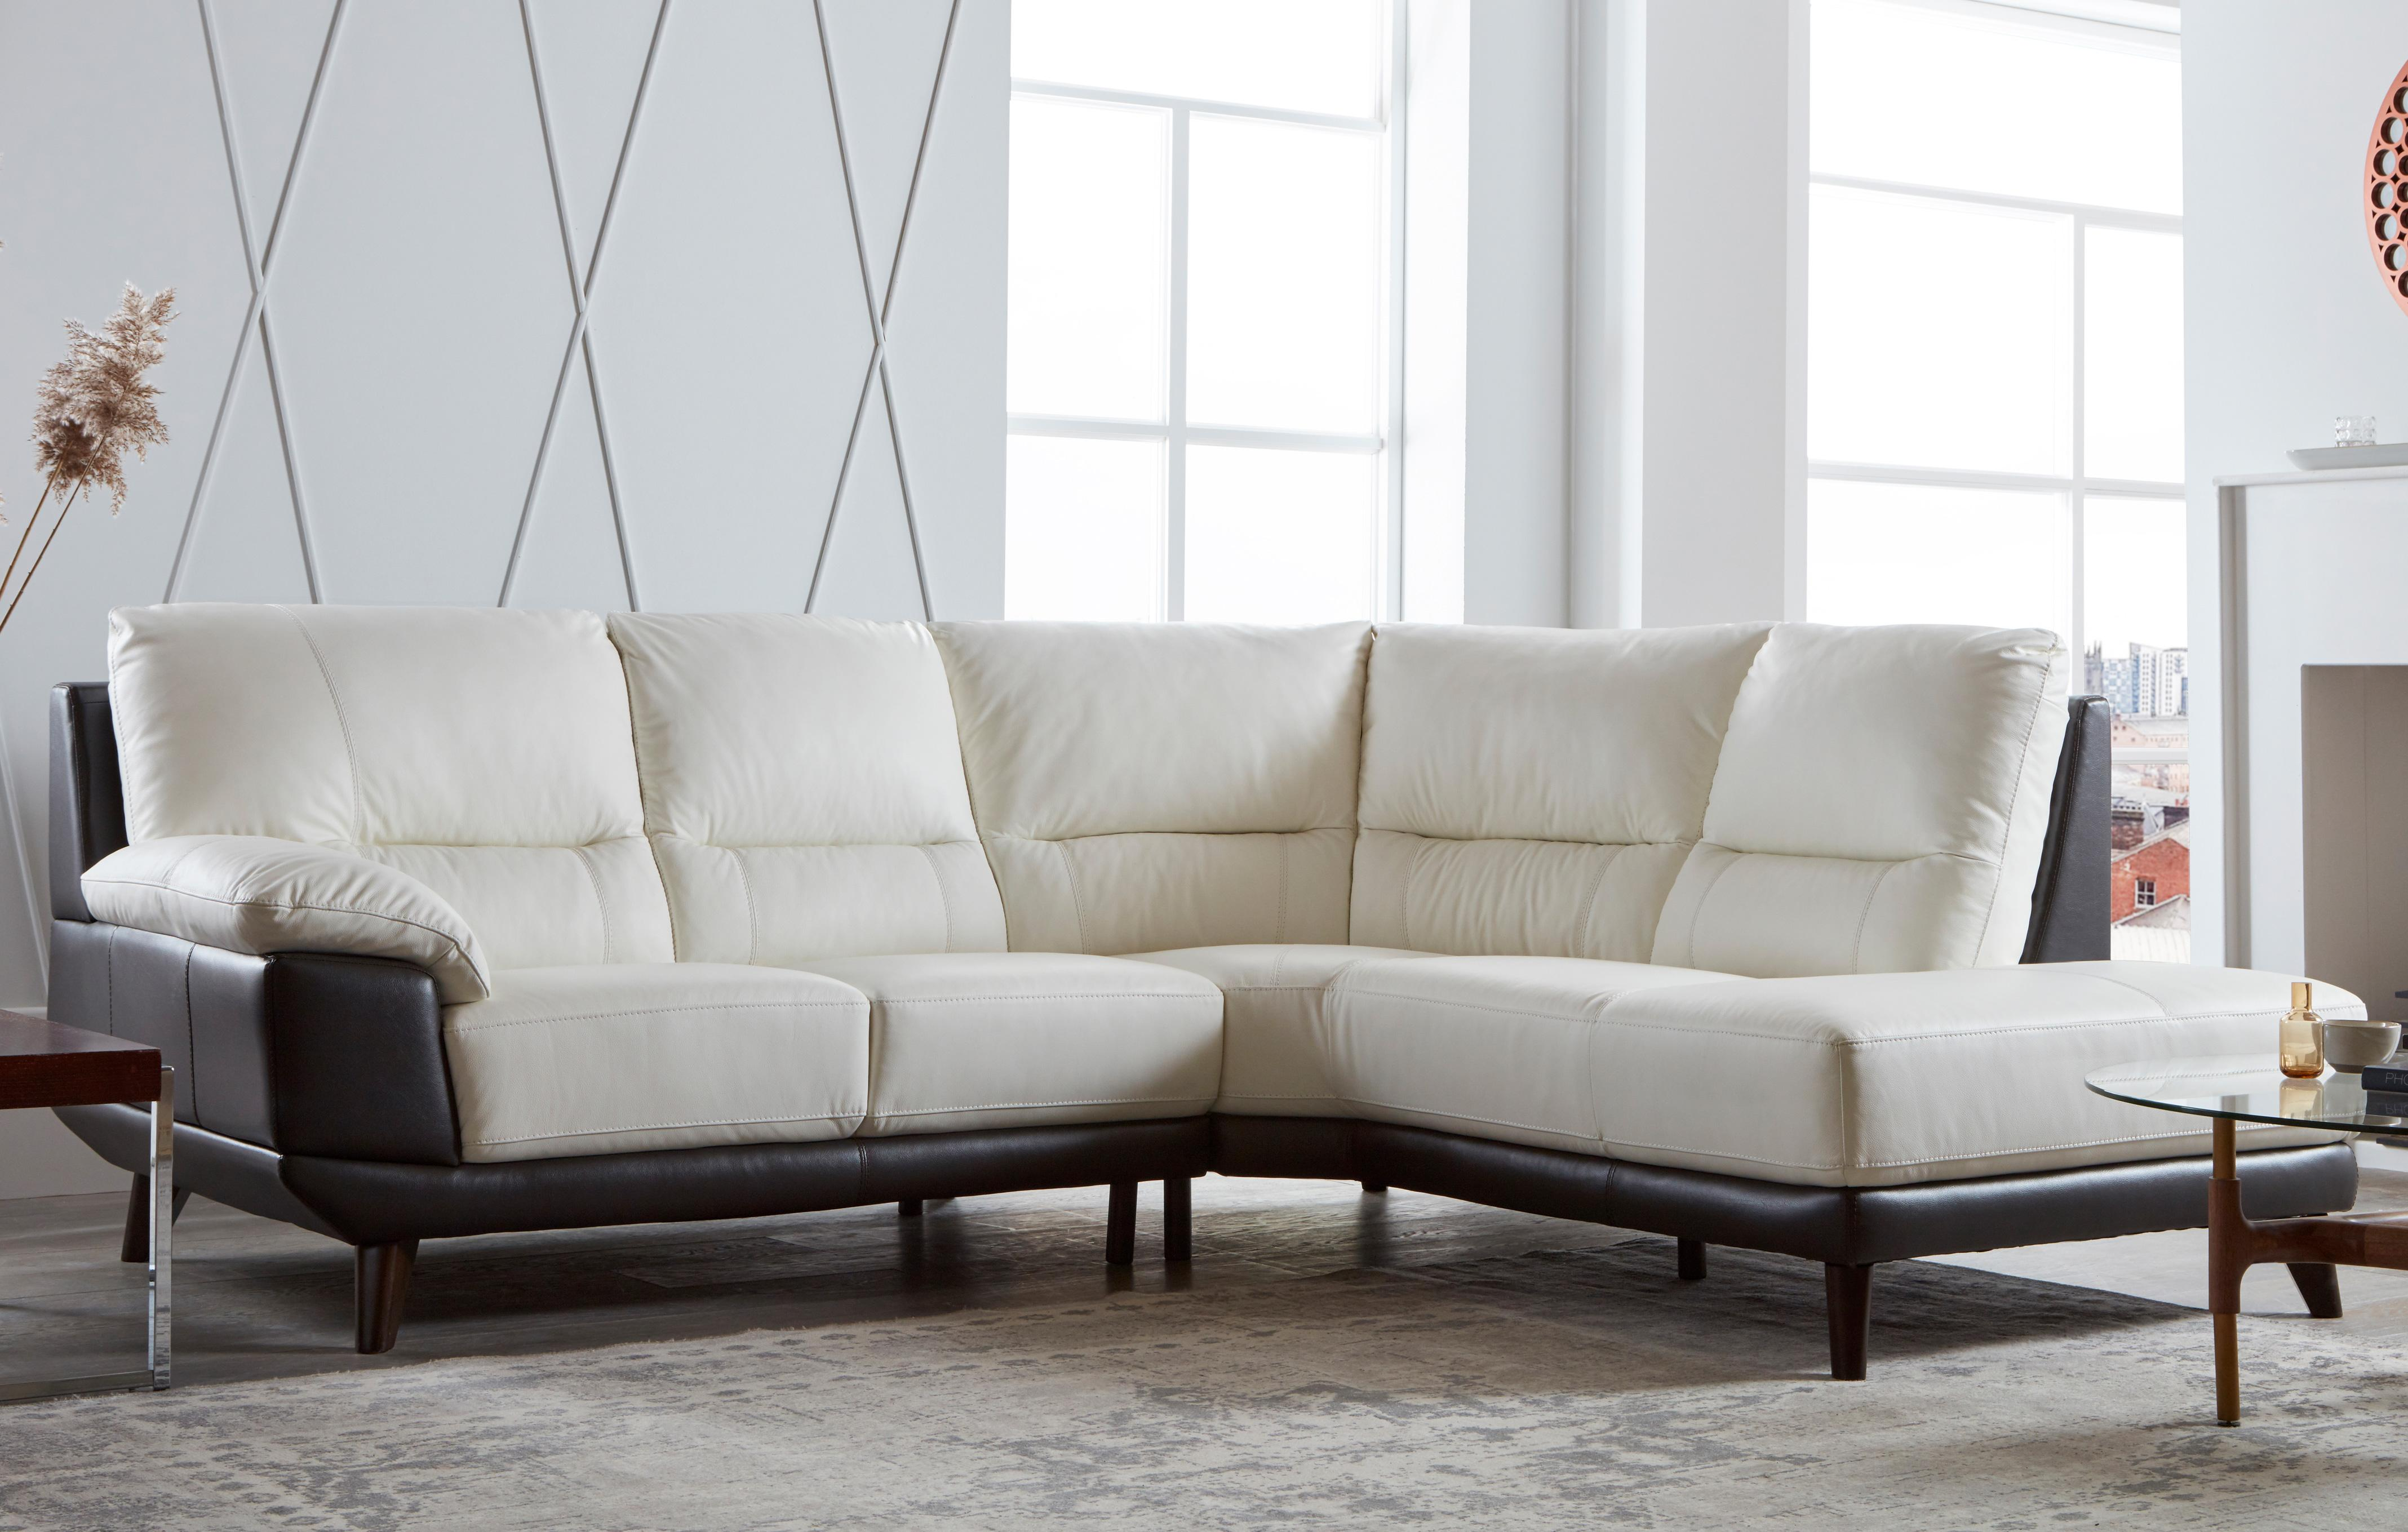 Couches For Sale Brisbane Leather Sofa Sales Best Interior Furniture